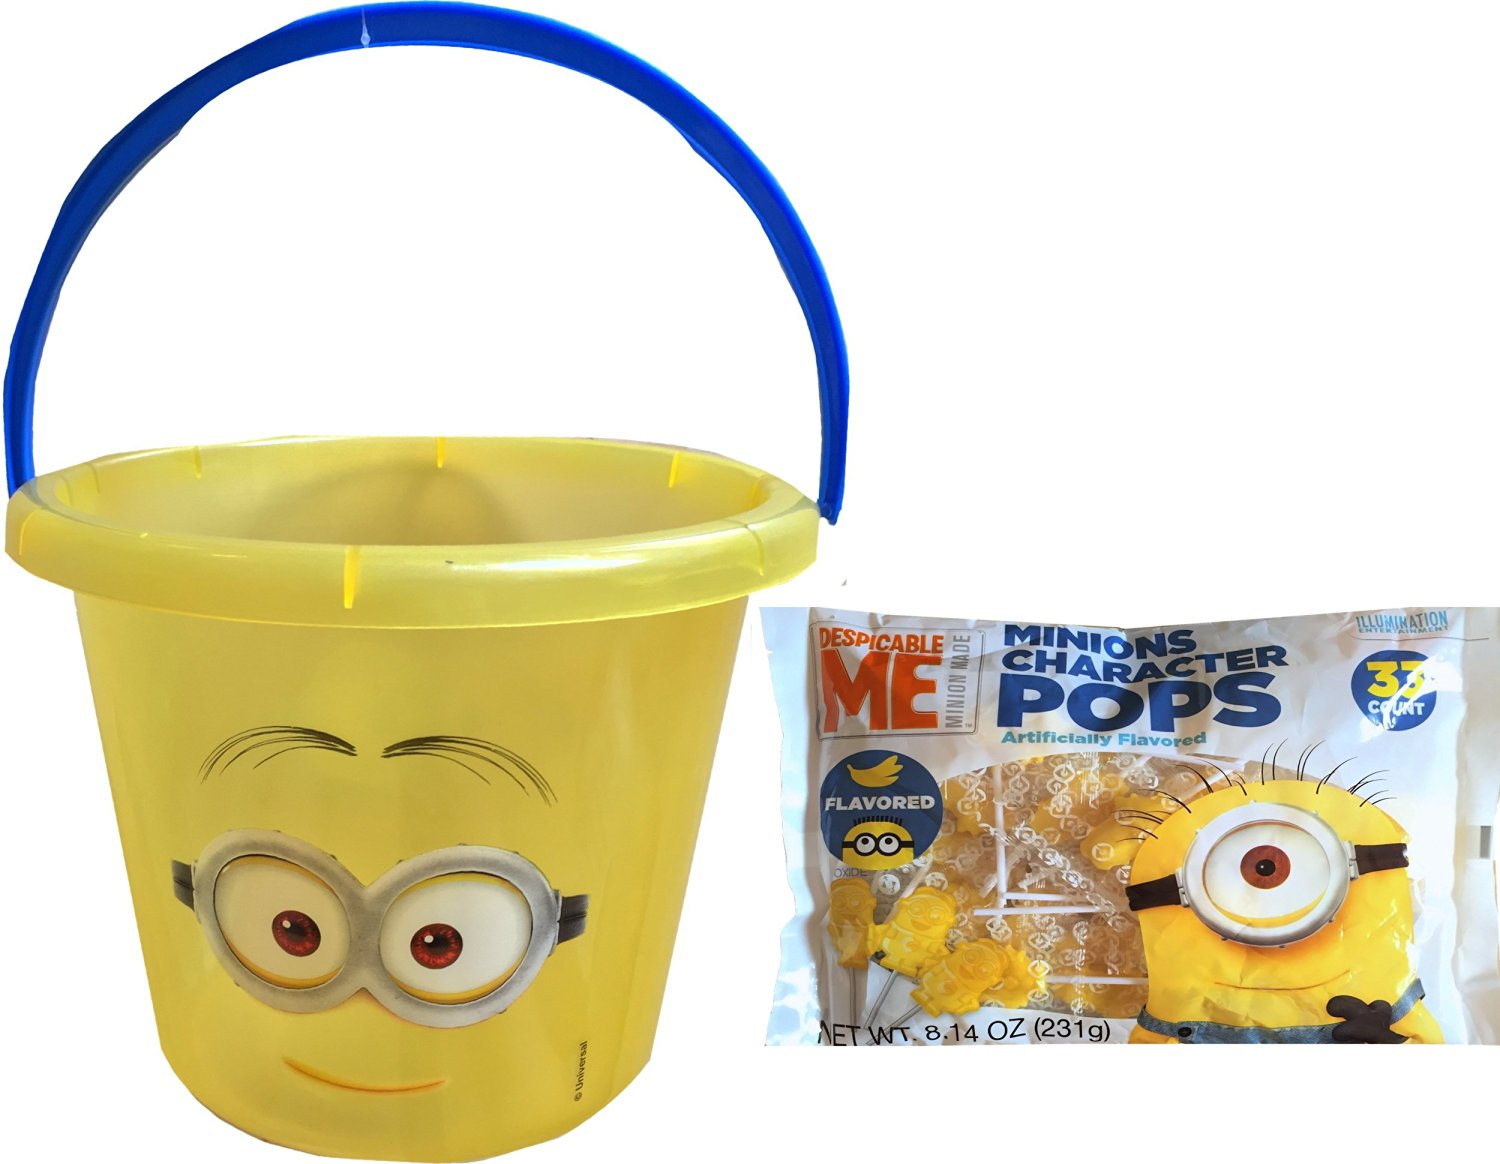 Minions Children's Jumbo Halloween Toy Bucket for USE of a Halloween Candy Trick O Treating Bucket with Minions Banana Flavored Character Pops 33 Count 8.14 Oz